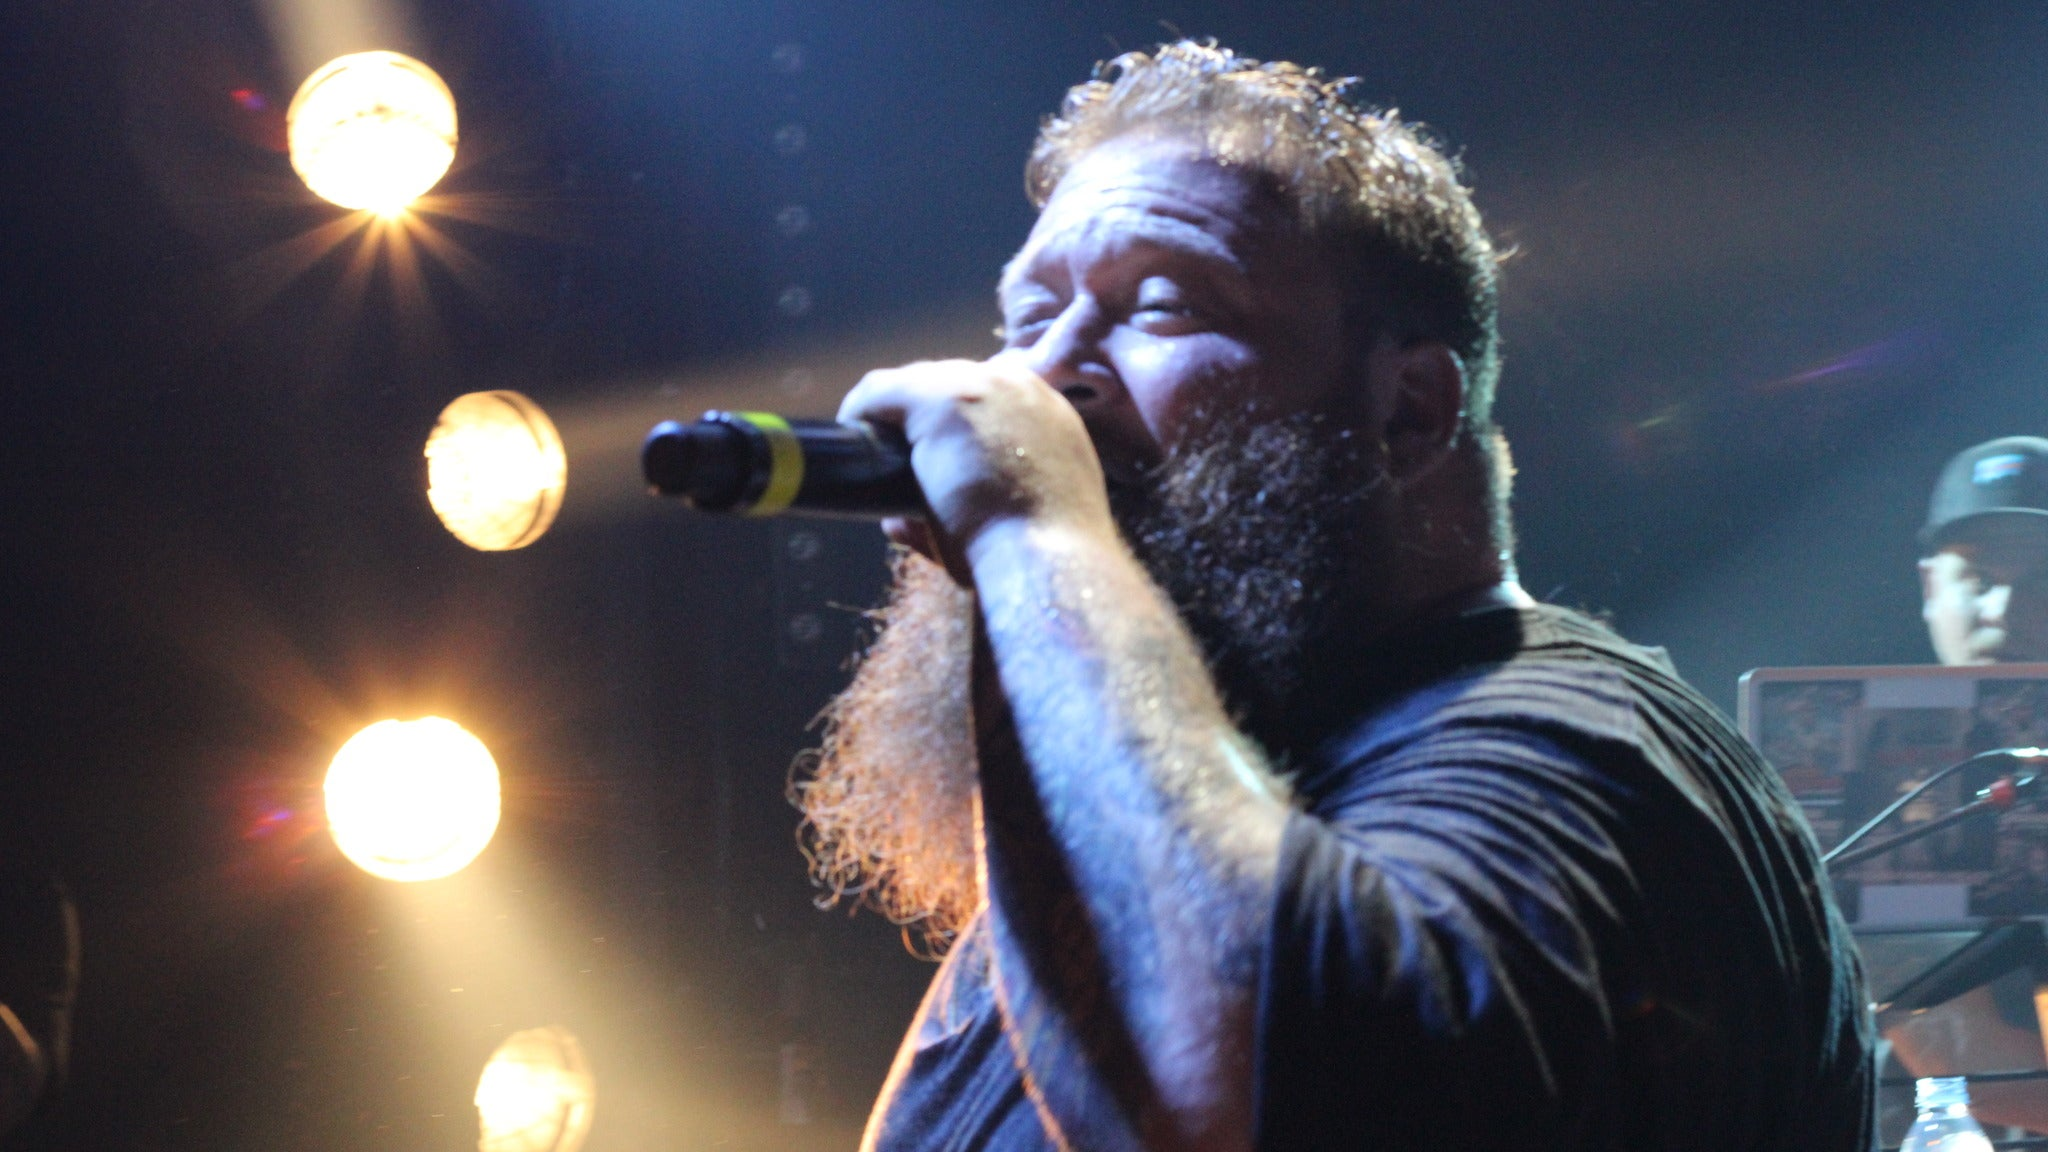 Action Bronson - White Bronco Tour at The Observatory